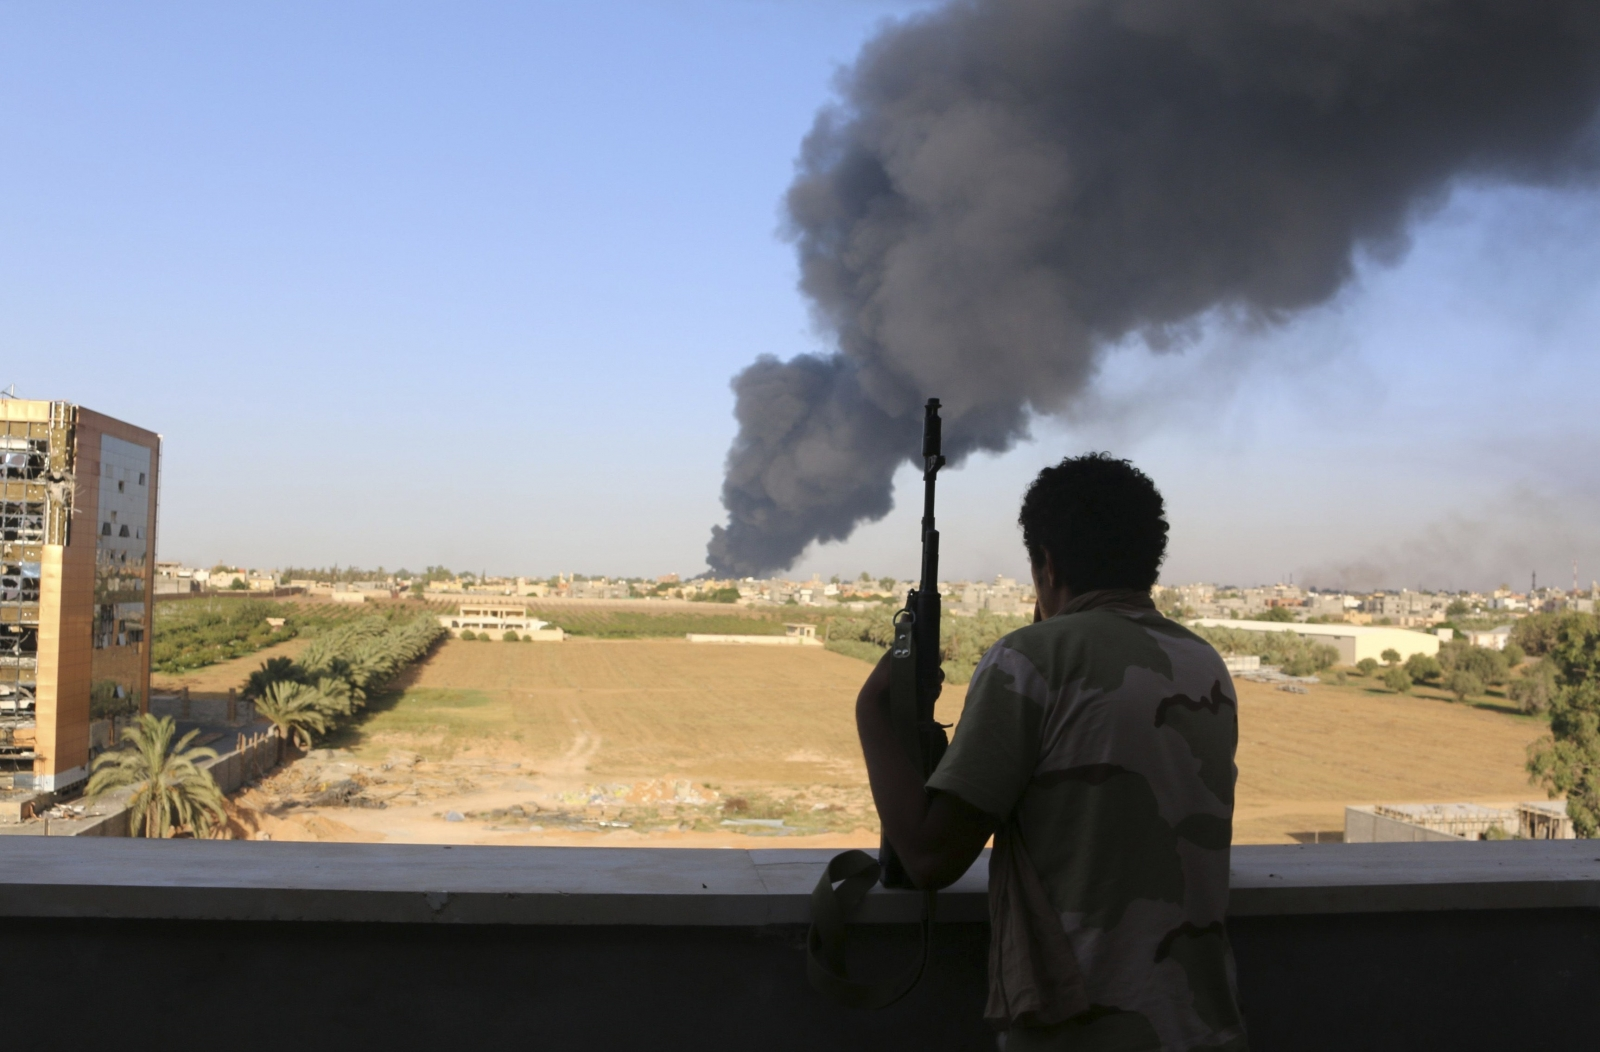 A fighter from Zintan brigade watches as smoke rises after rockets fired by one of Libya's militias struck and ignited a fuel tank in Tripoli